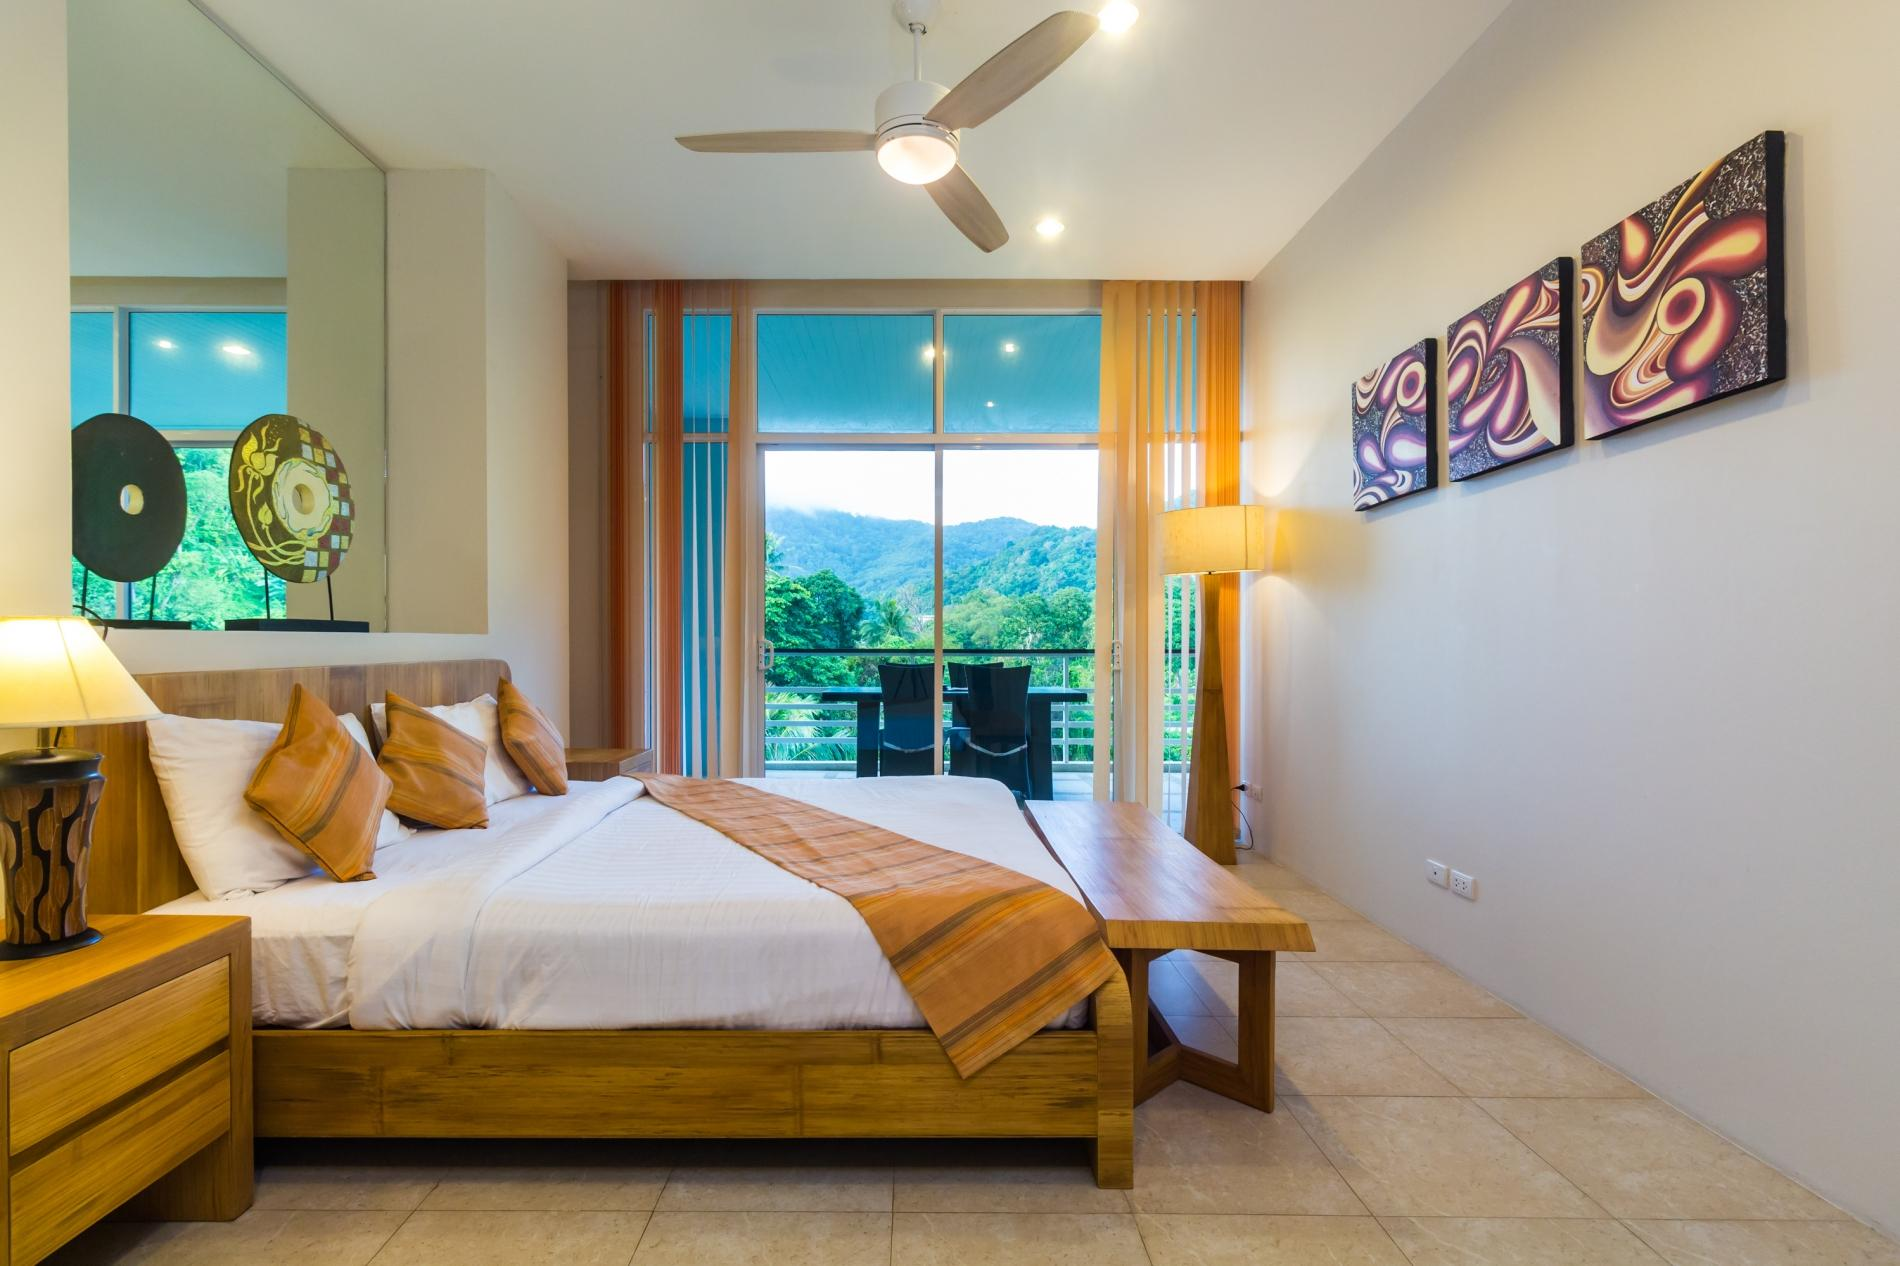 KH2604 - Mountain view apartment for 4 in Karon, 650 meters to beach photo 20384280